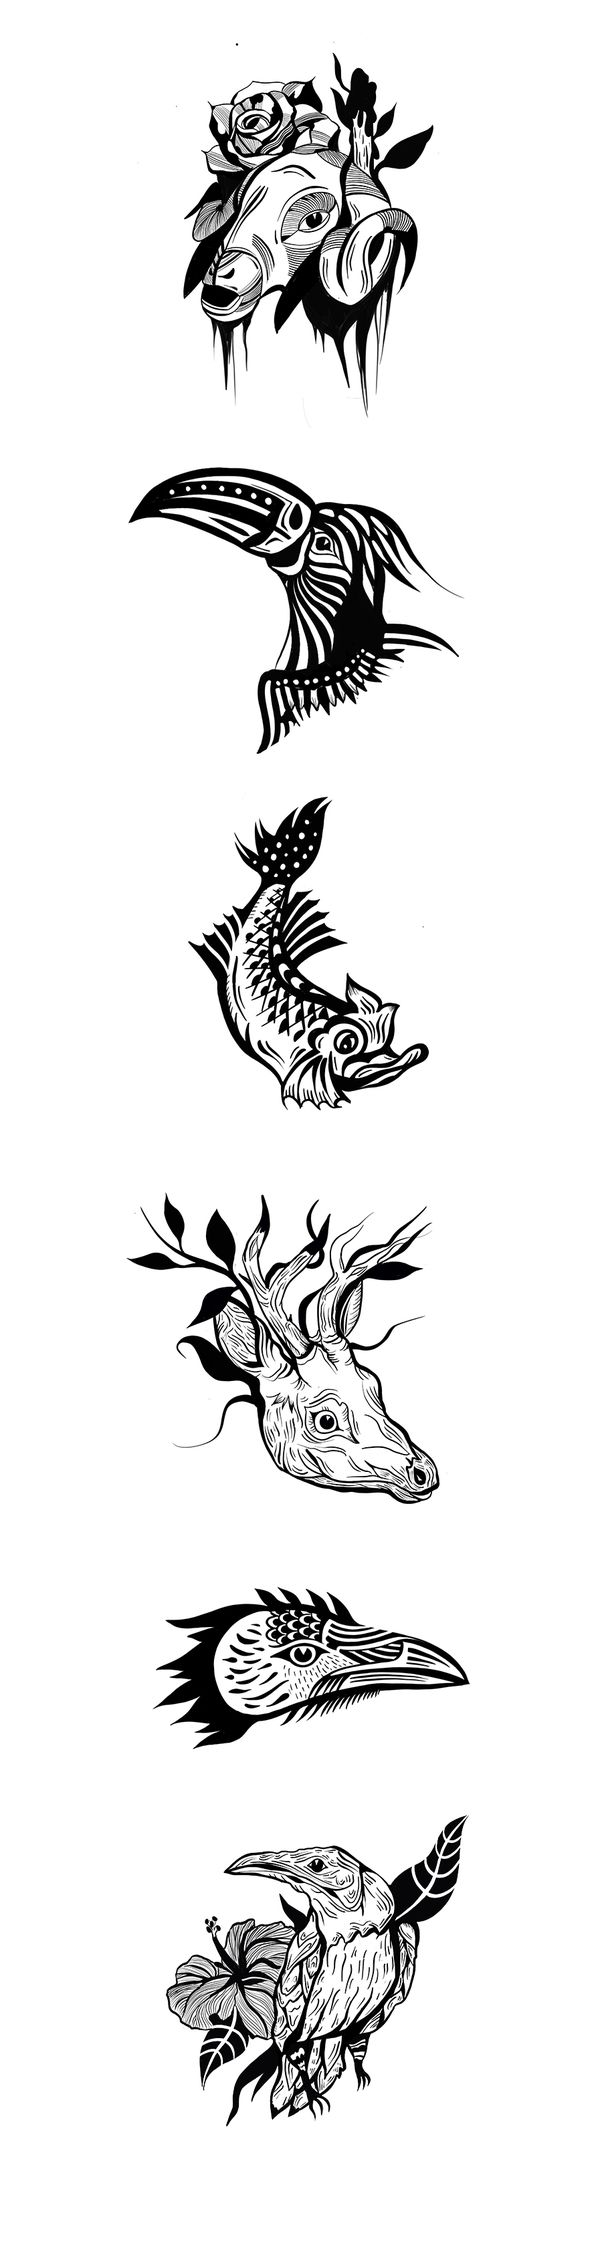 set tattoo design skin - tattoodesign - boria | ello